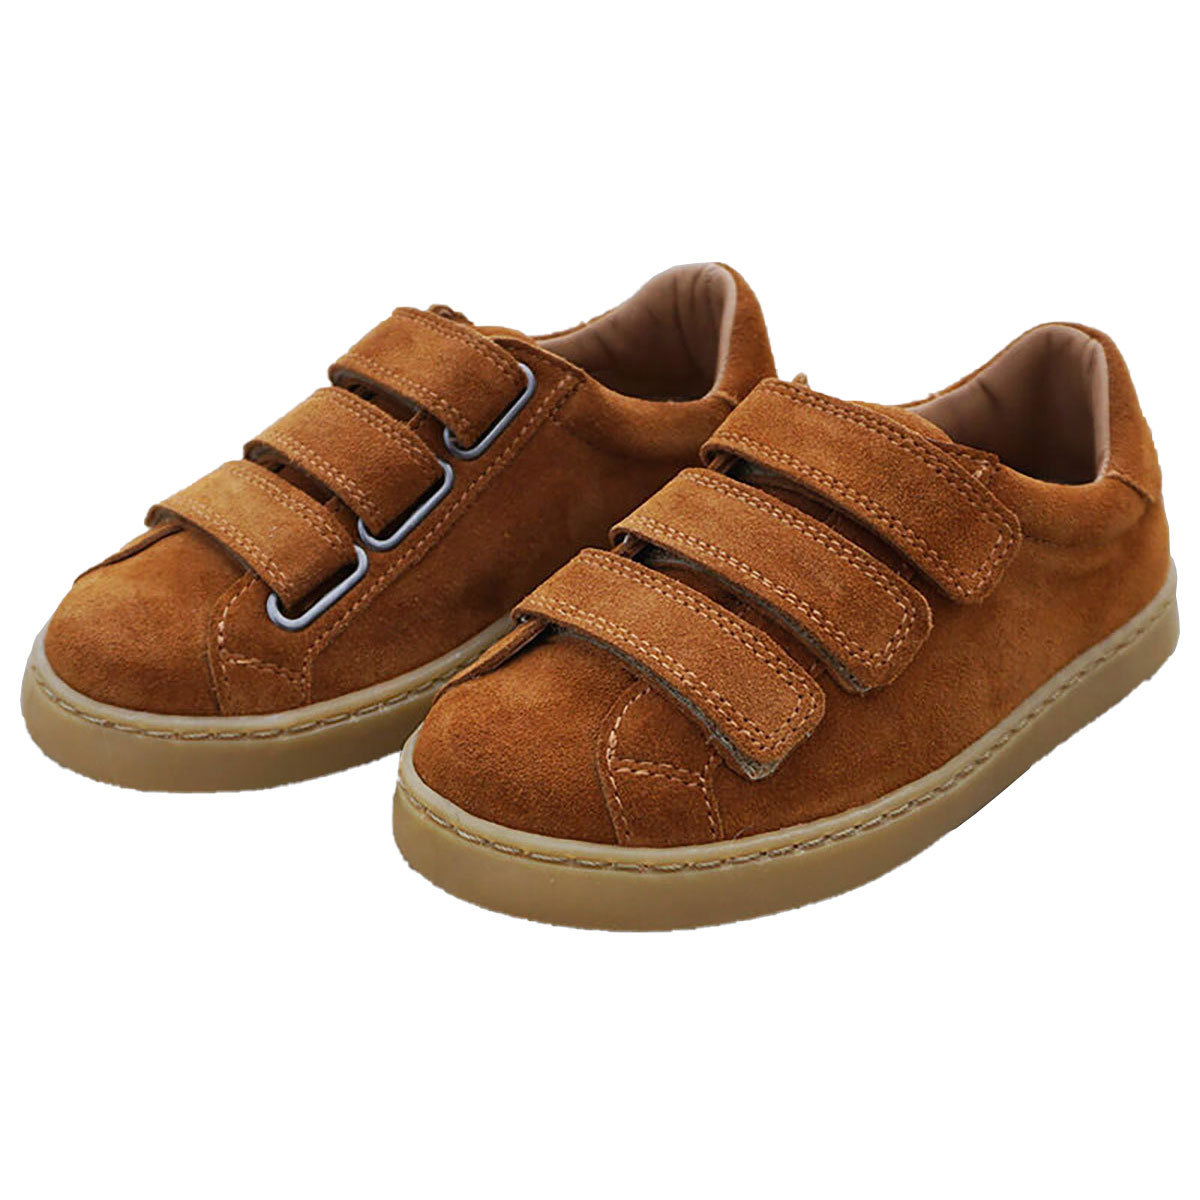 Chaussons & Chaussures Basket Môme Camel - 25